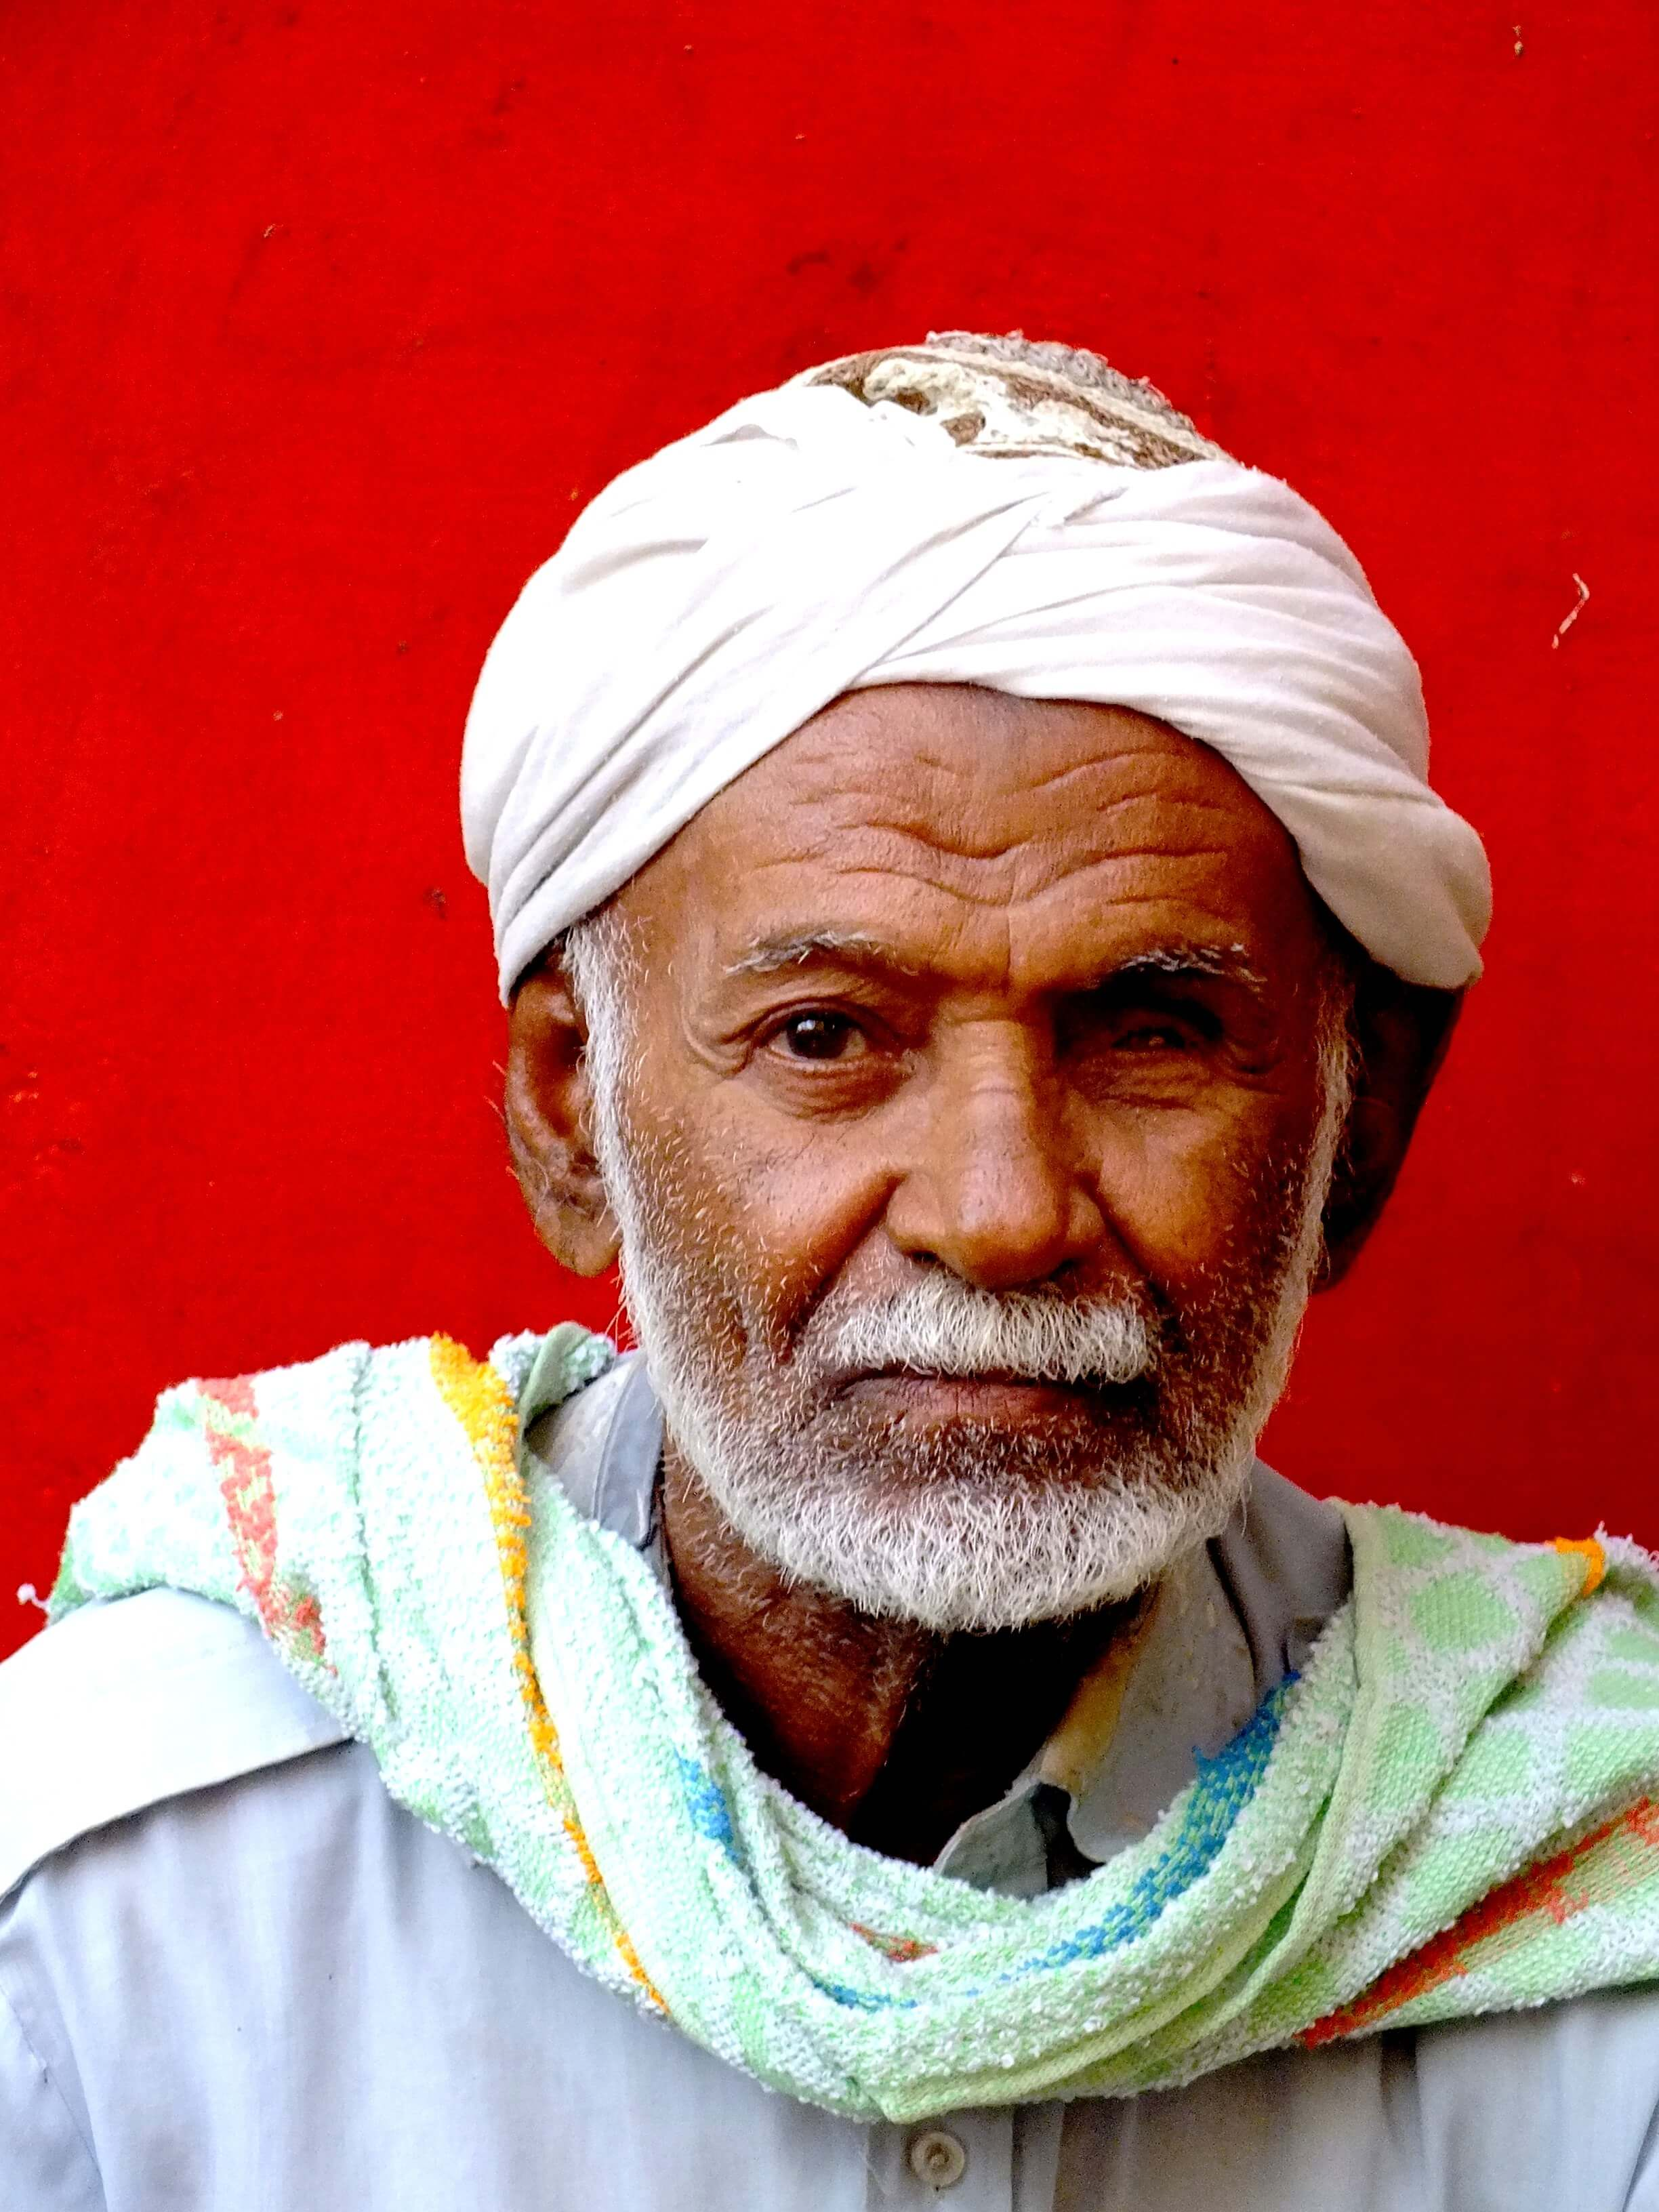 Djibouti, old man